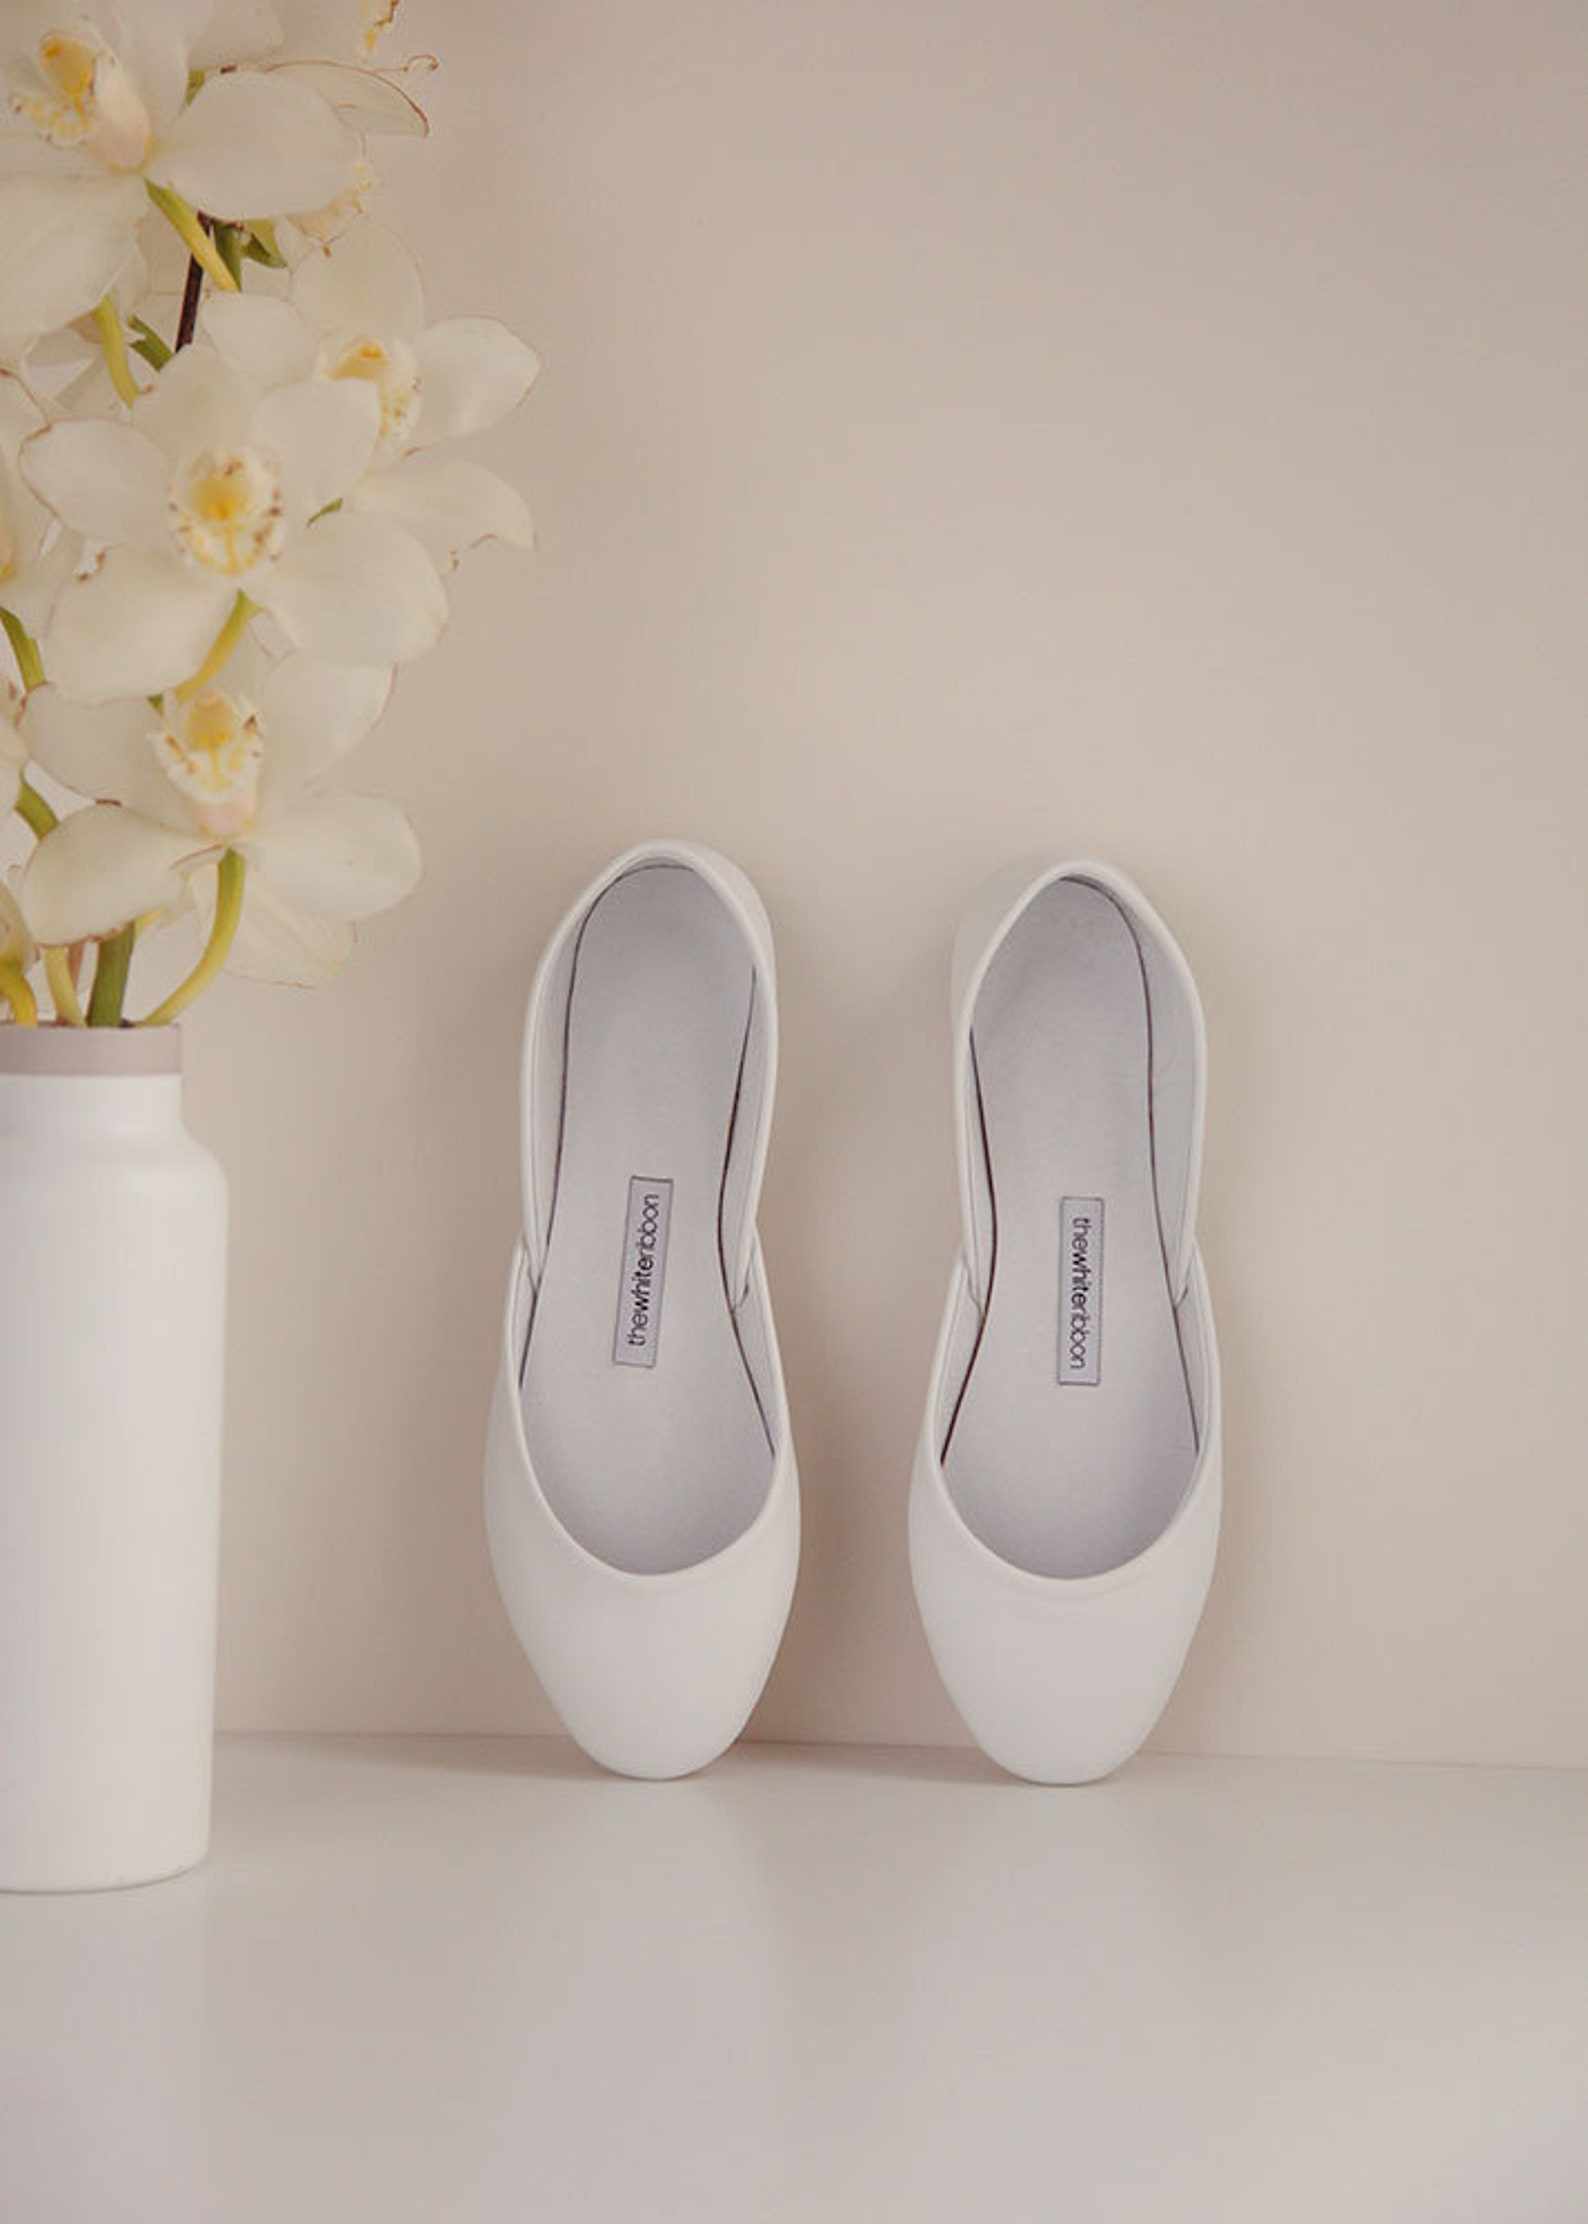 the white bridal ballet flats | bridesmaids flats | wedding ballet pumps | classic model | standard width | classic white | read